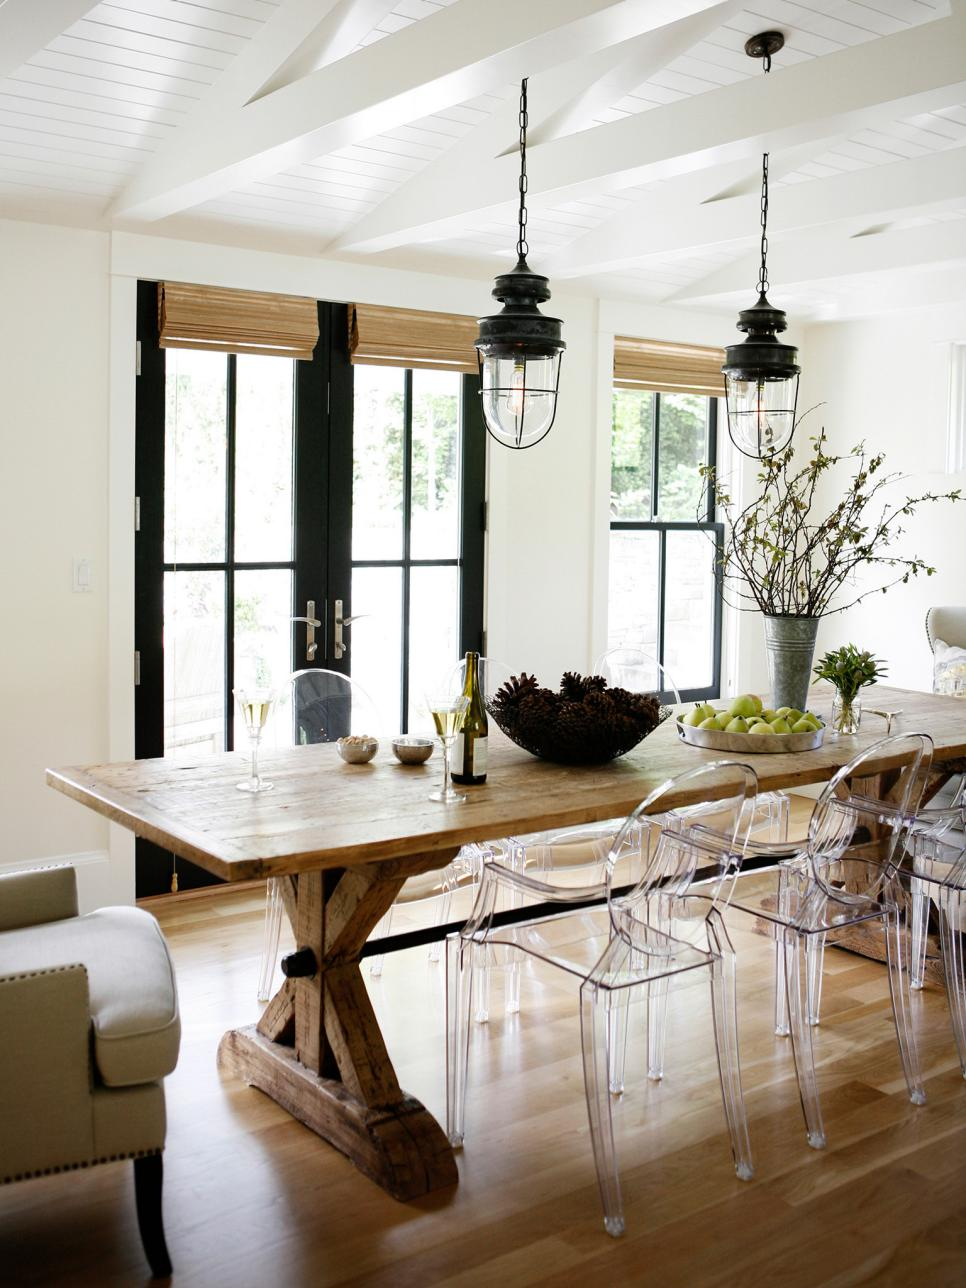 Rustic meets refined 15 ways to add farmhouse style hgtv for Dining room 101 heswall